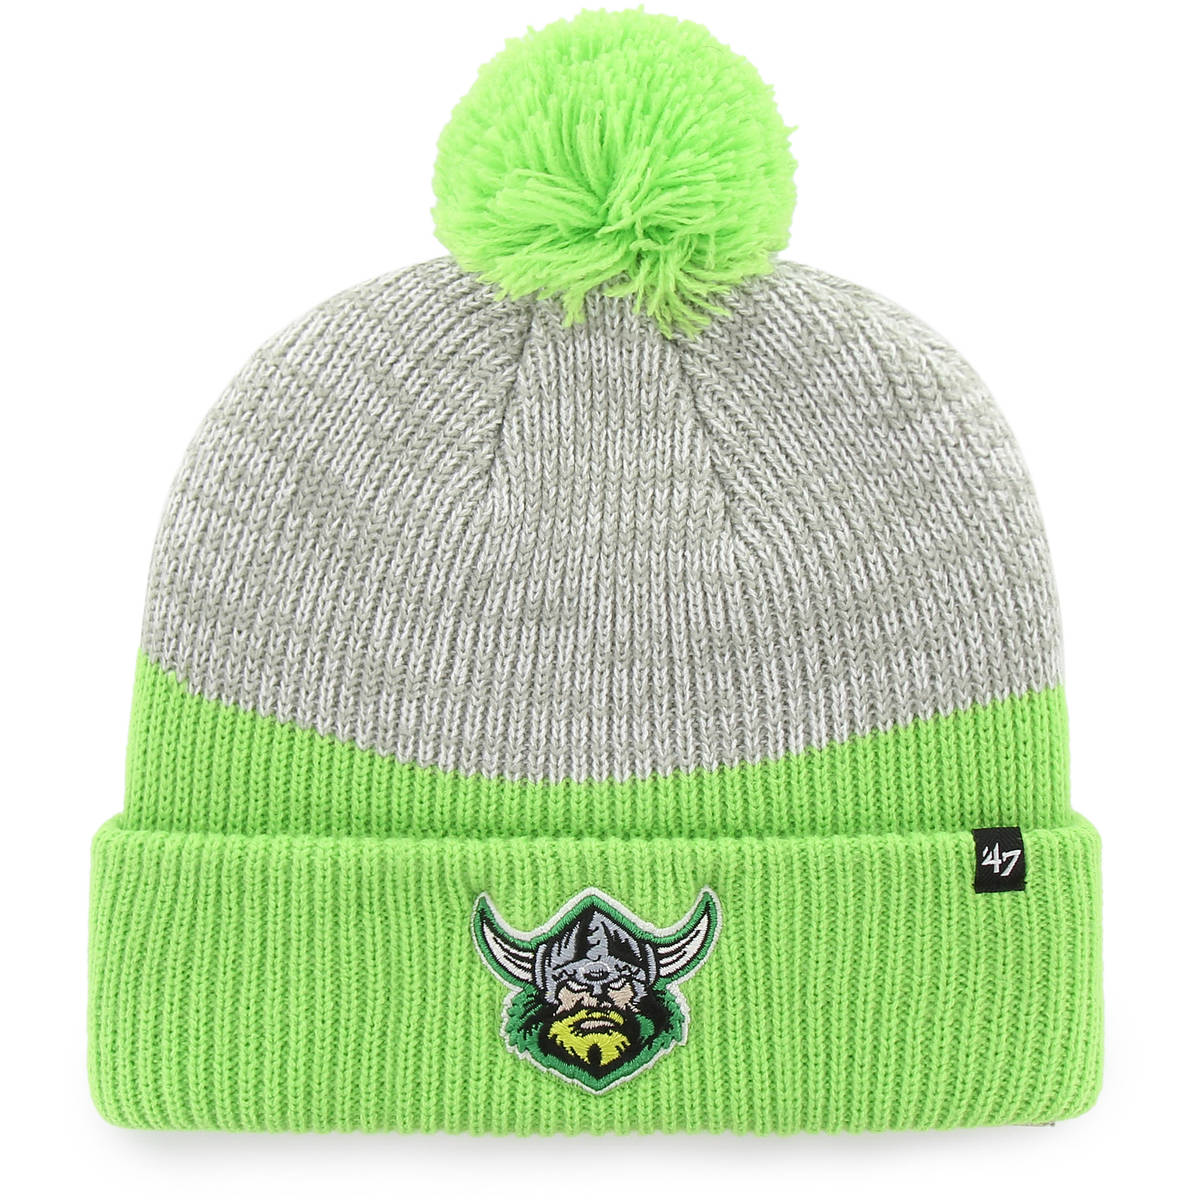 Raiders Backdrop Beanie0